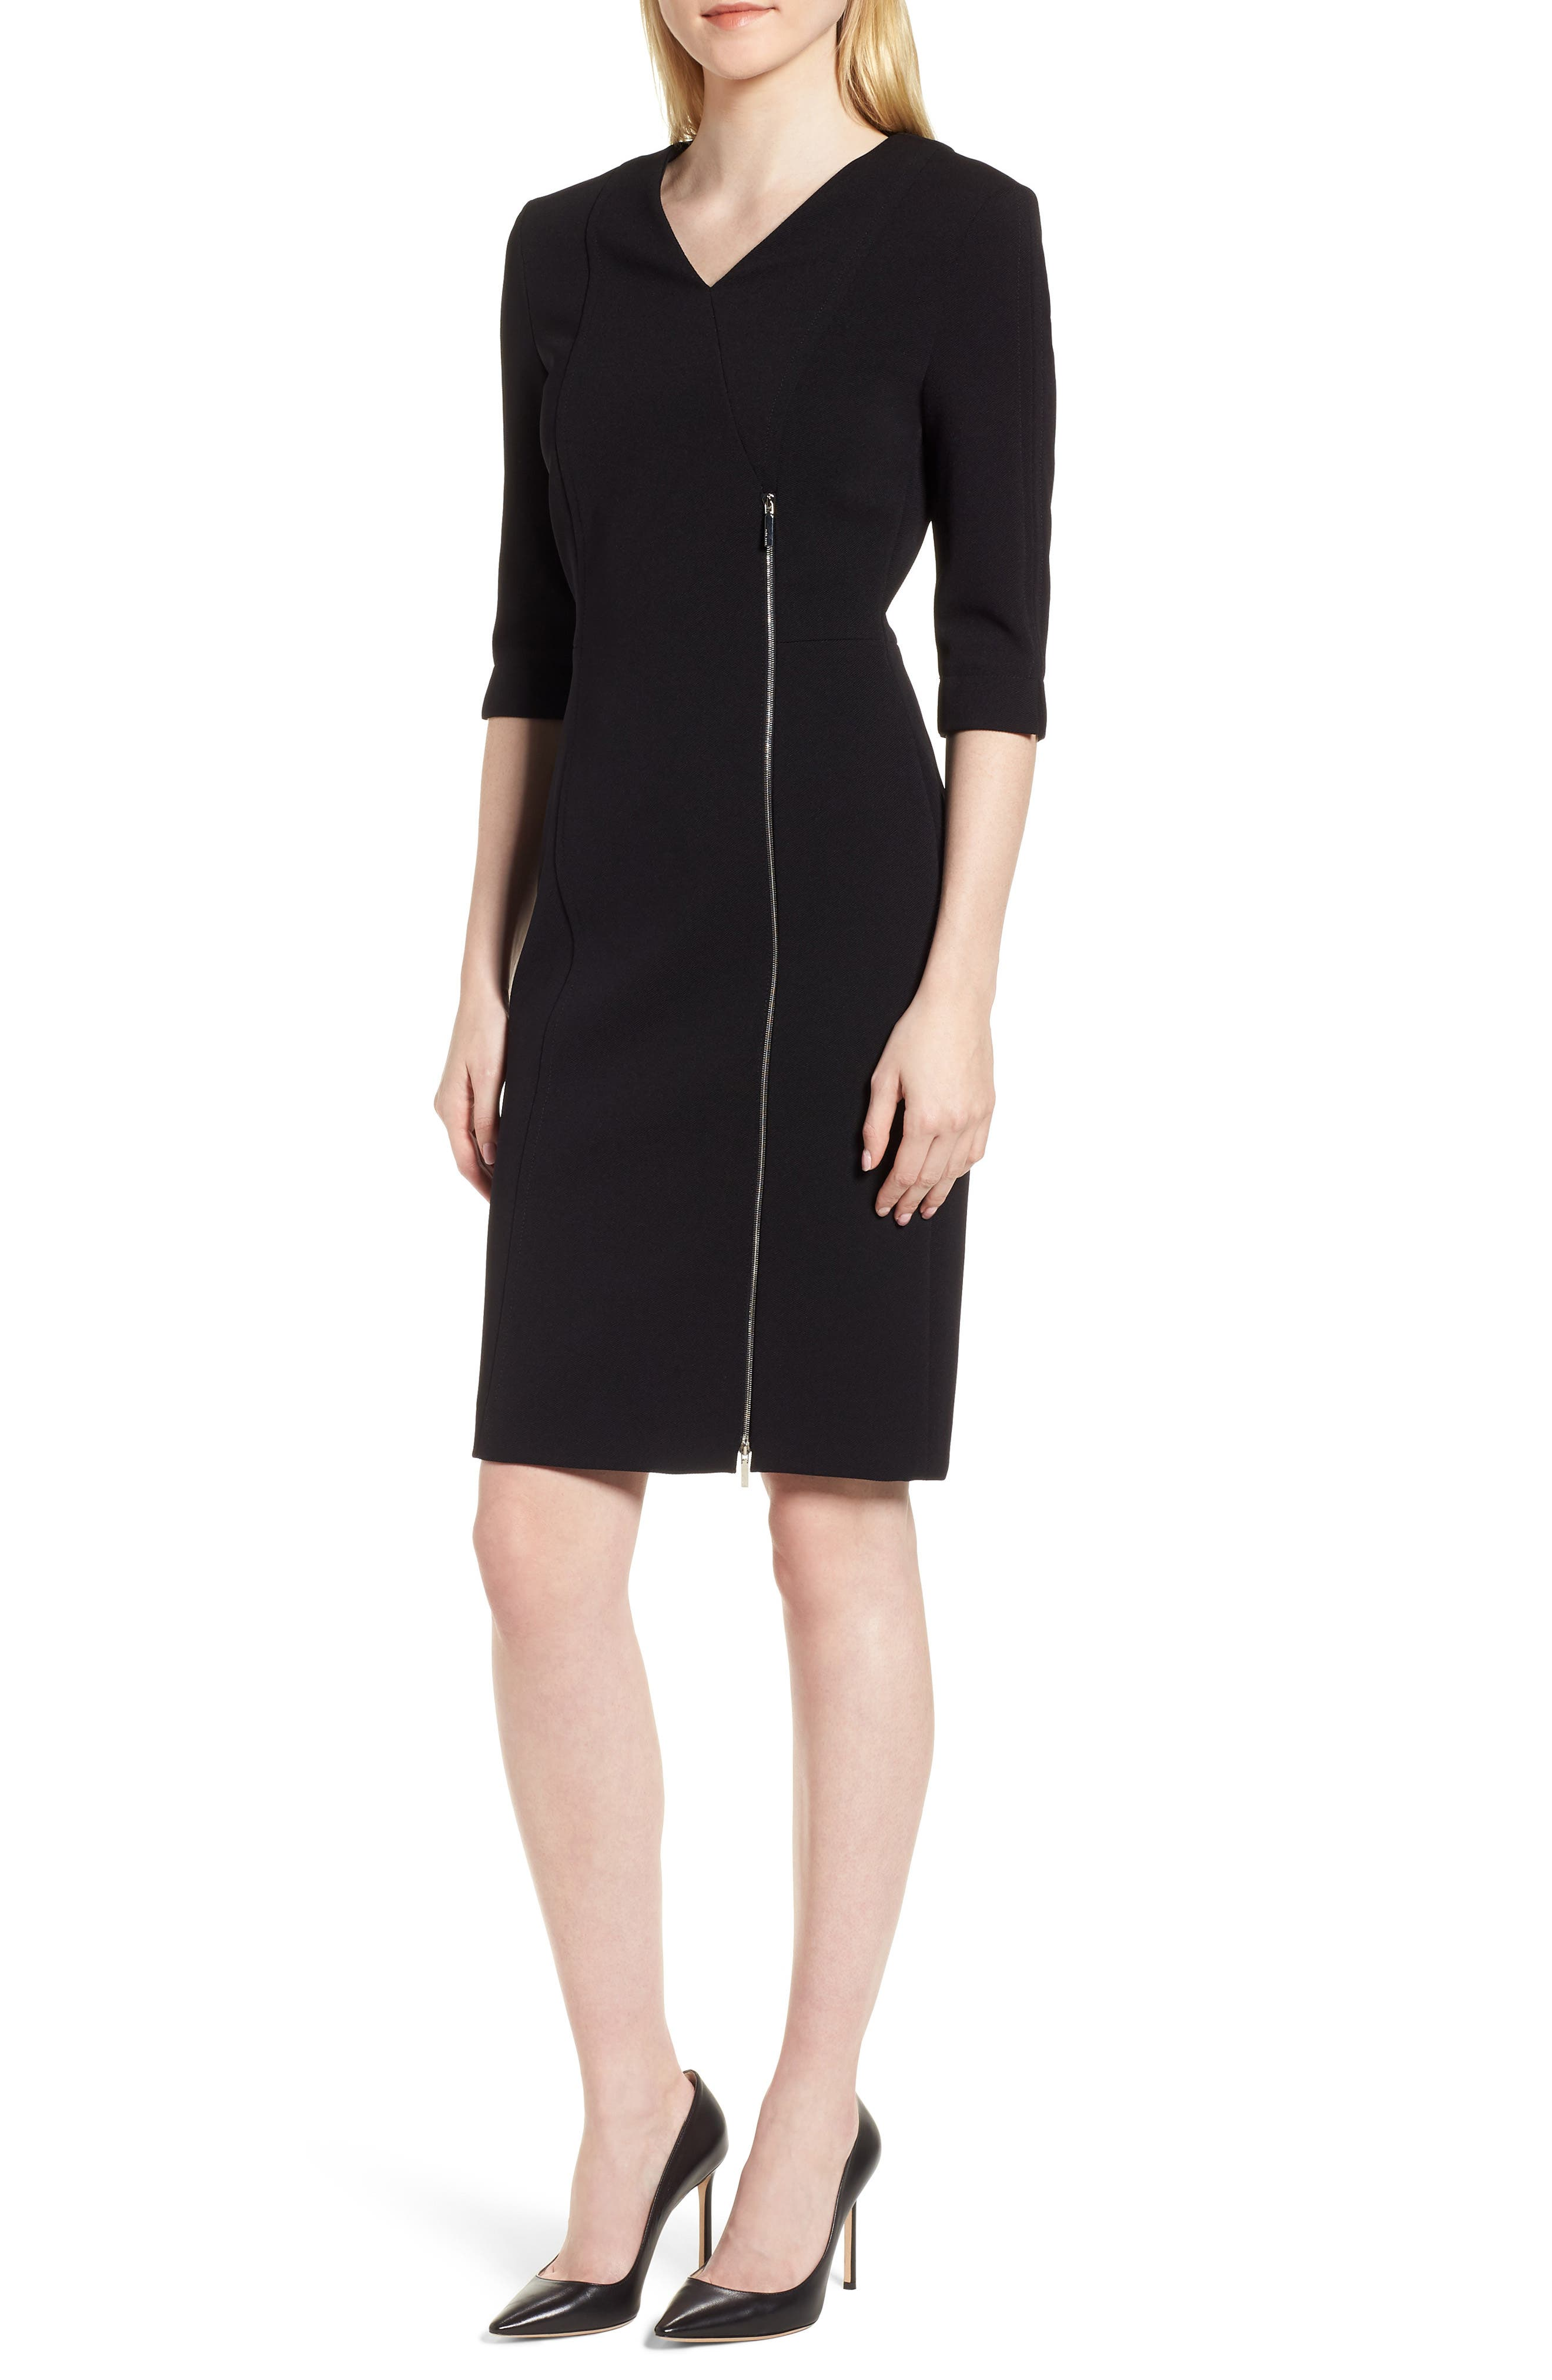 Deazema Twill Jersey Dress,                             Main thumbnail 1, color,                             Black